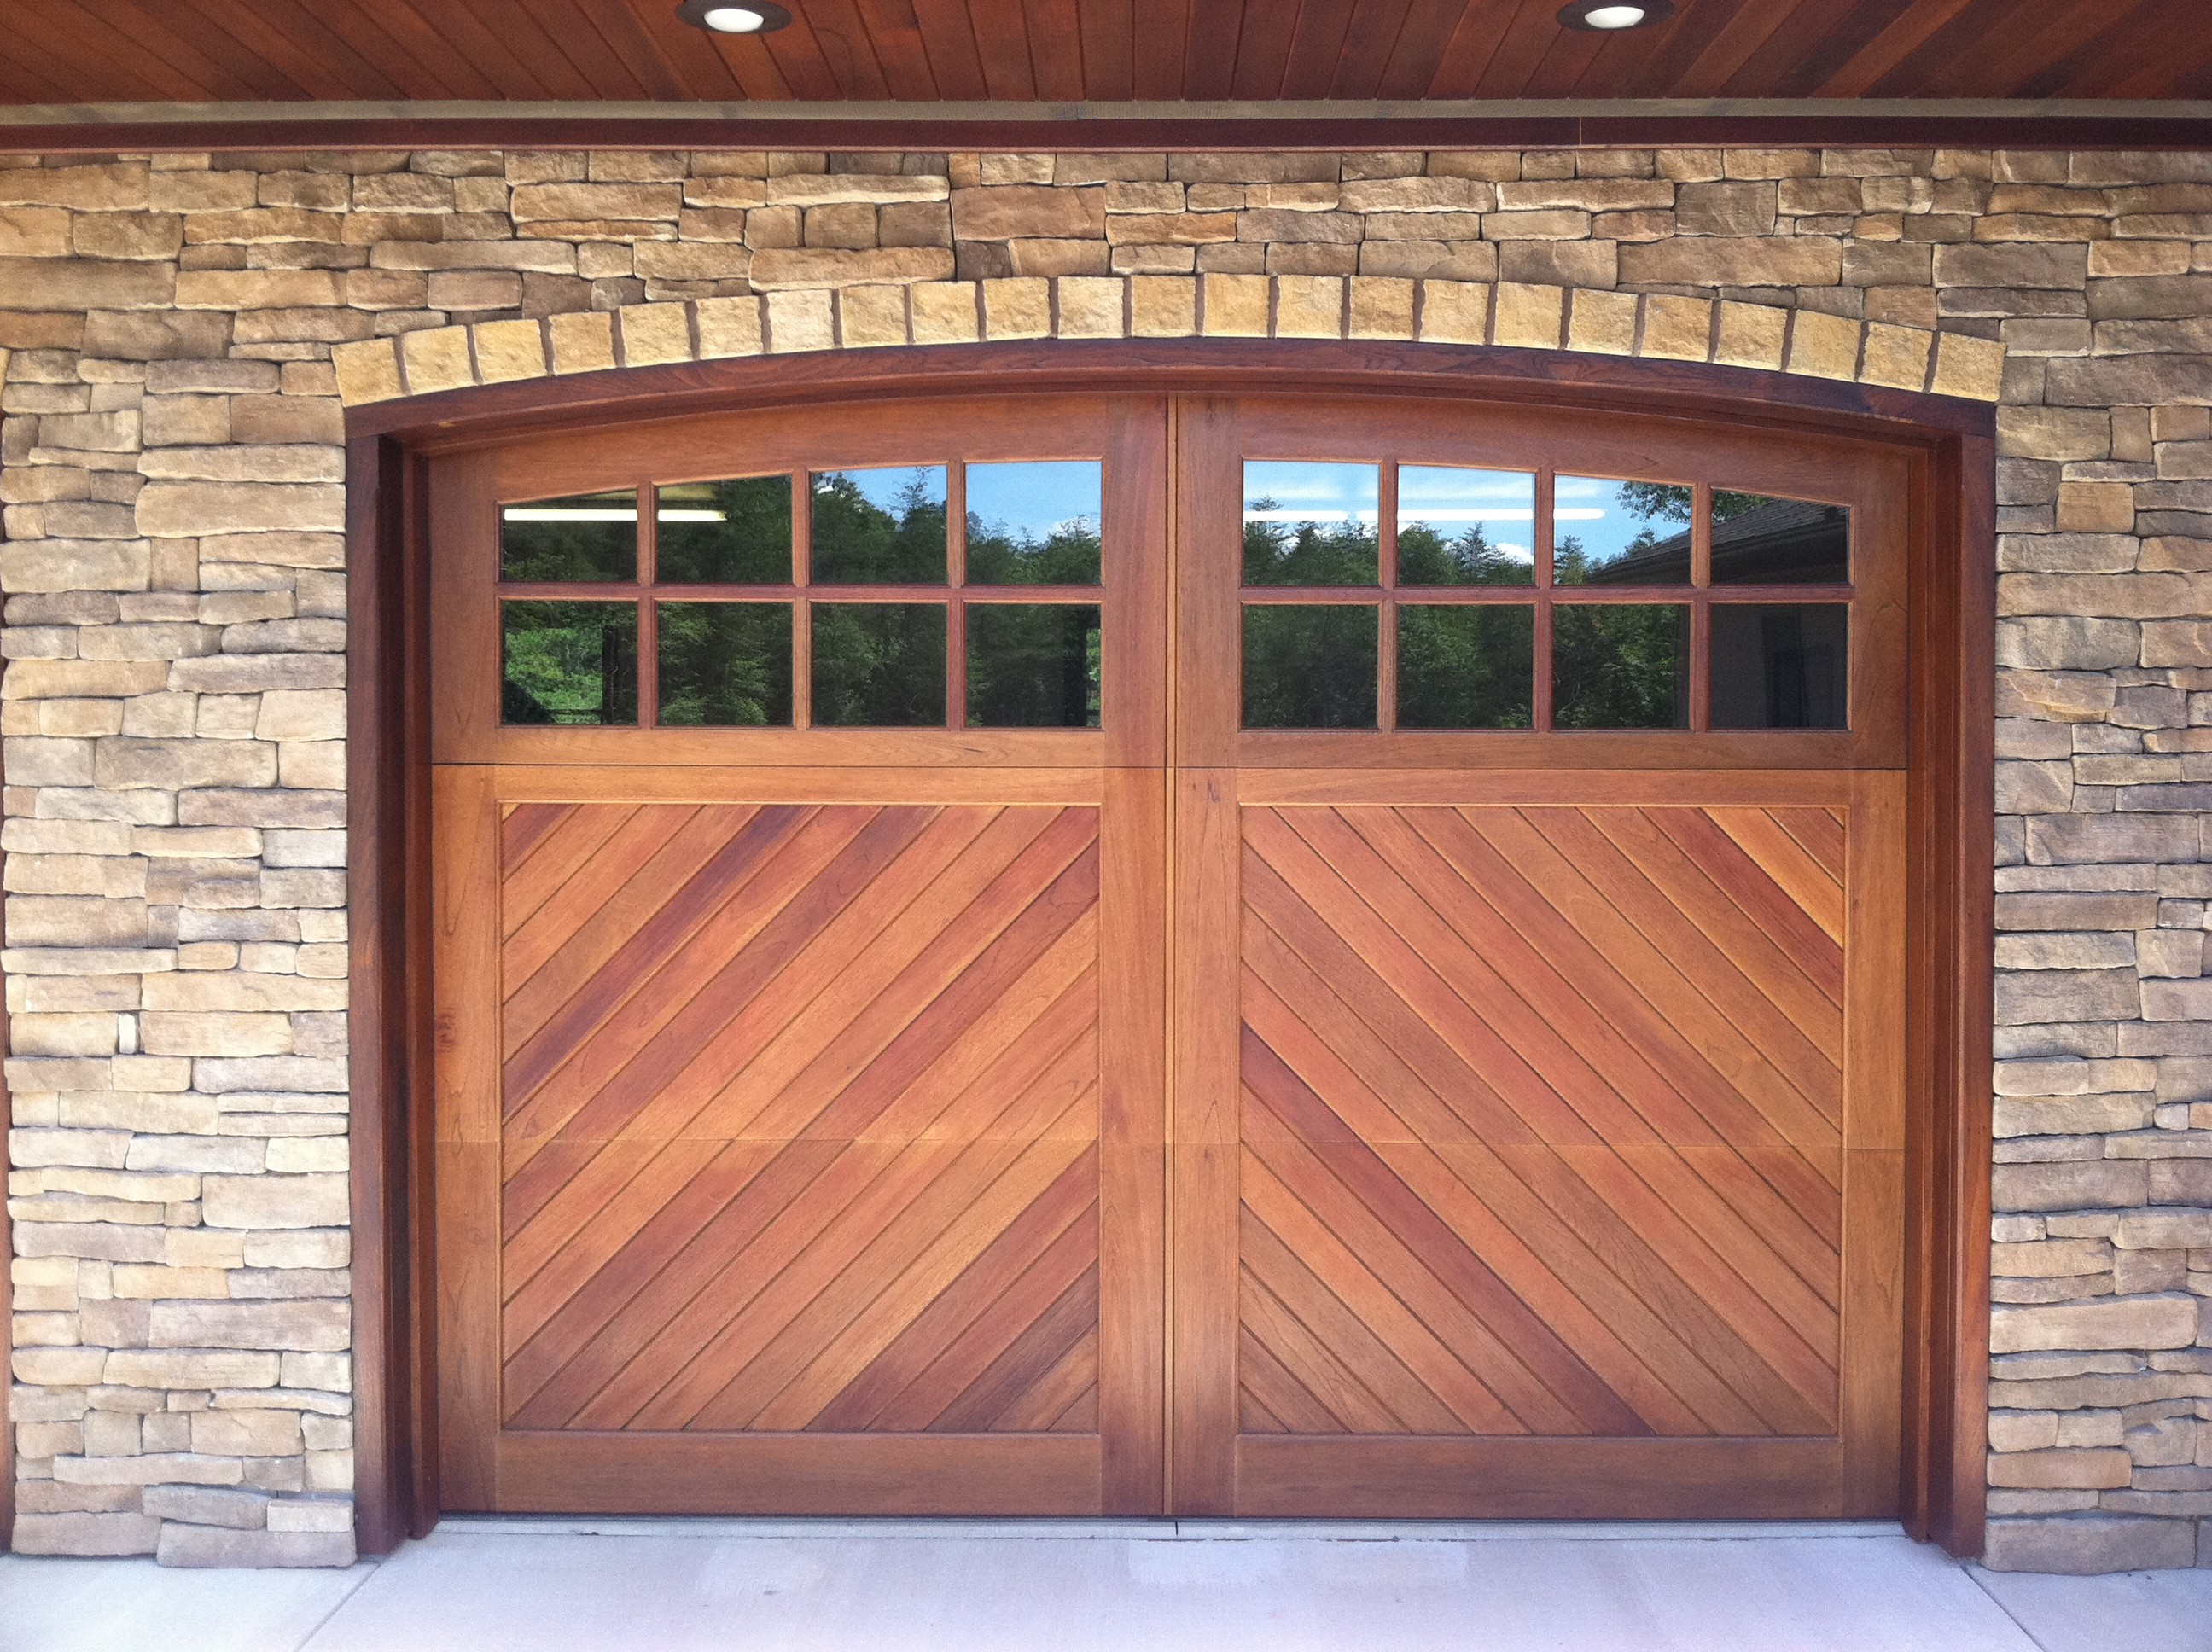 Carriage double garage door - Carriage Double Garage Door 33